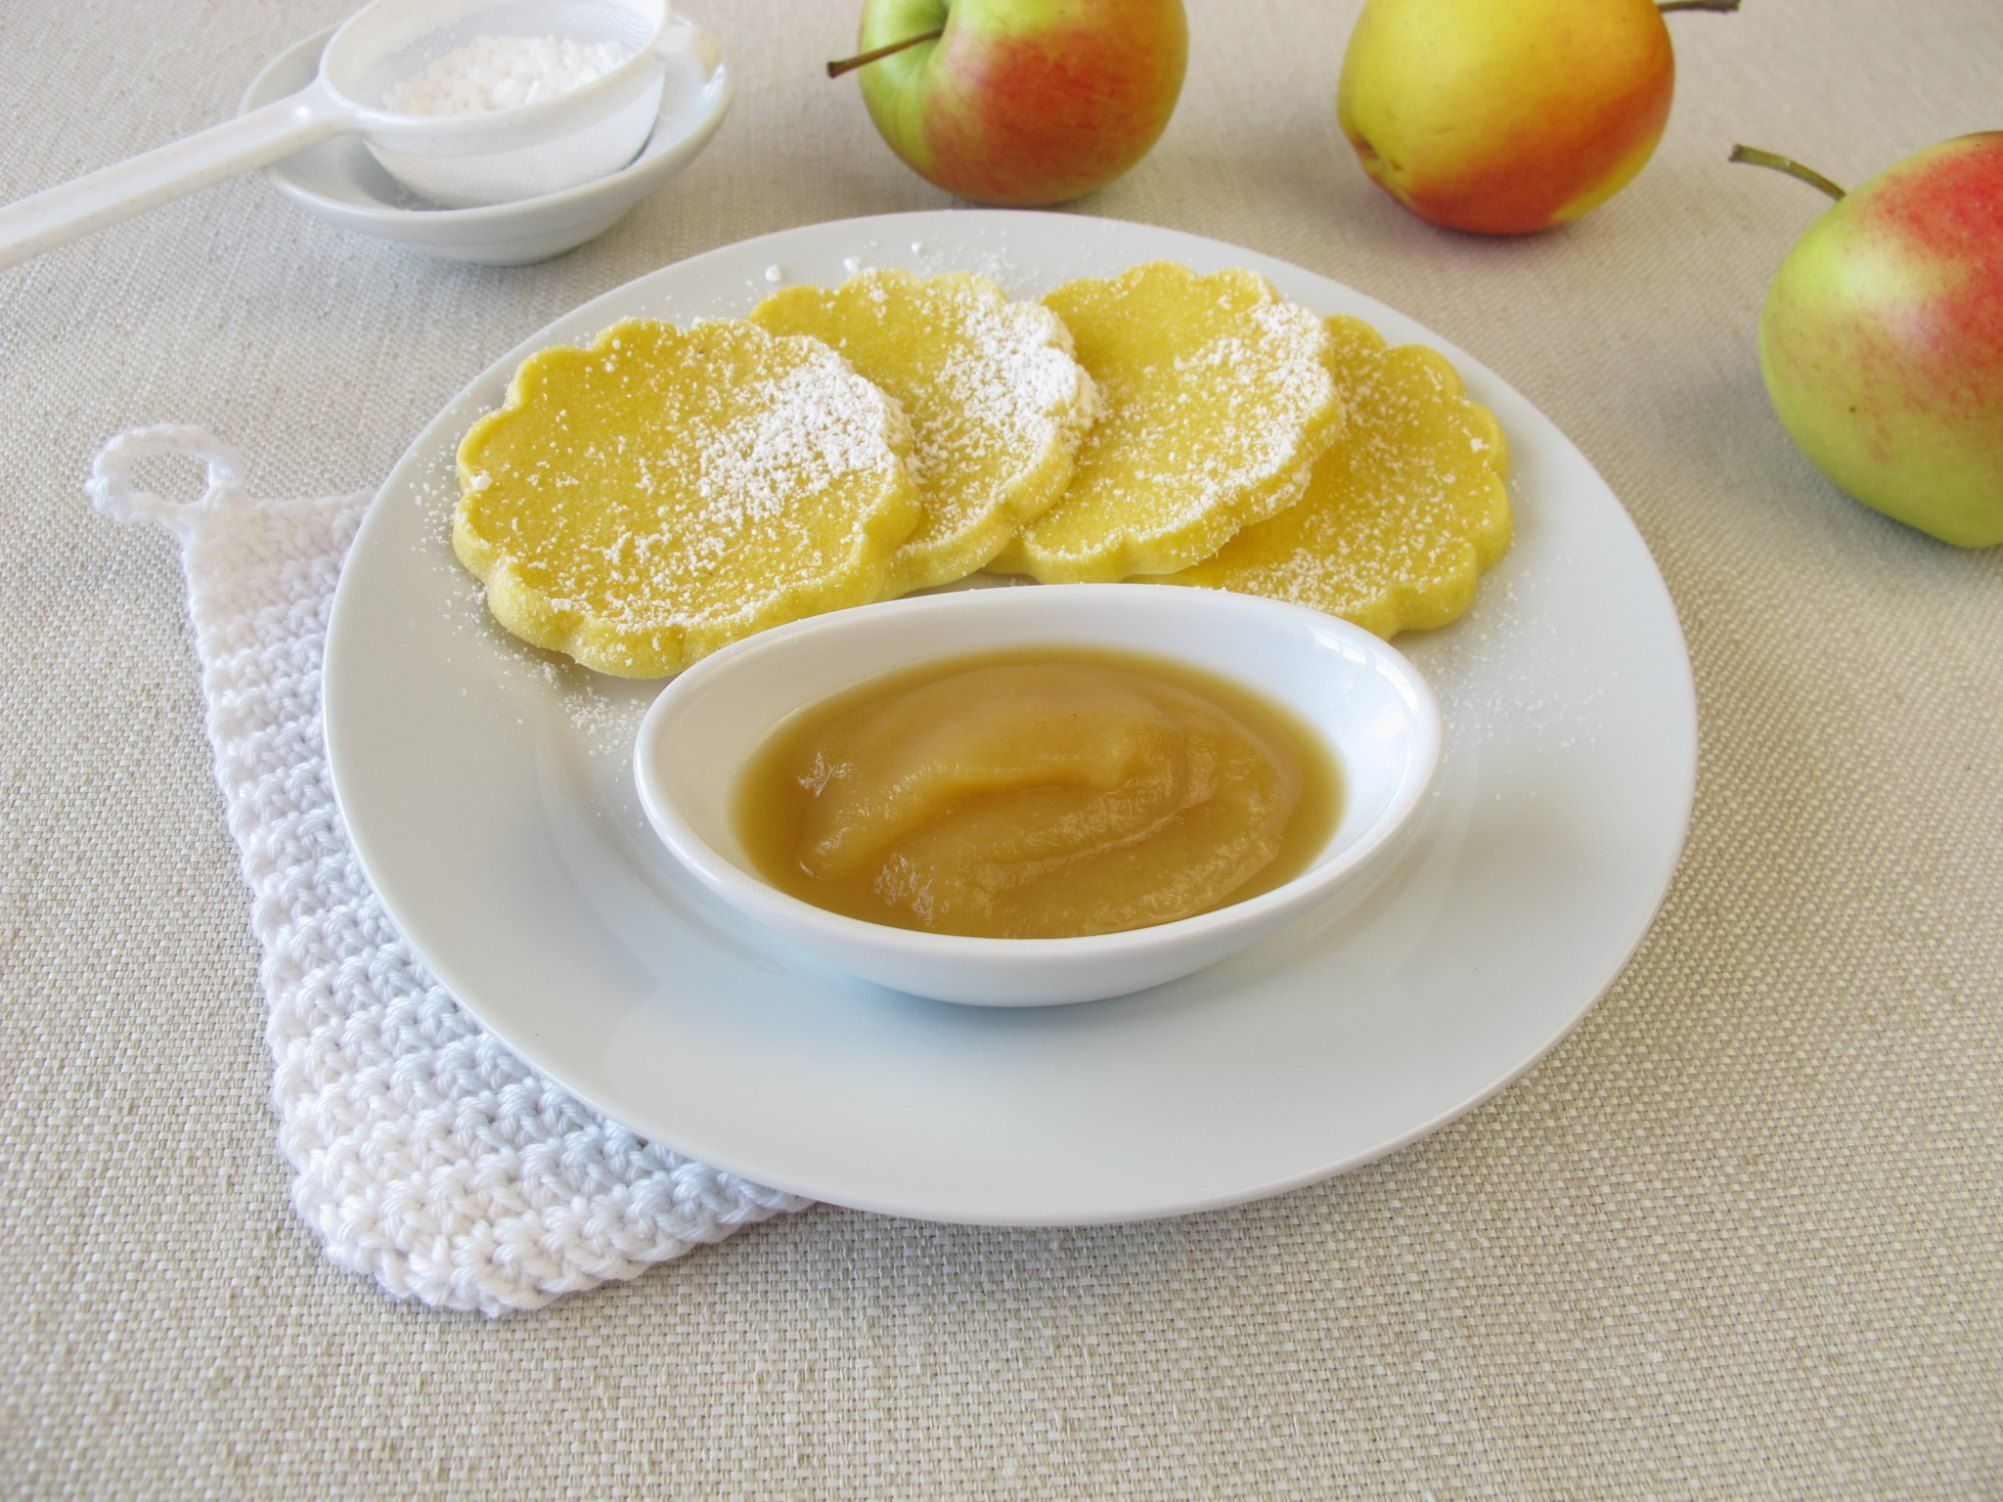 How to Use Applesauce Instead of Oil When Baking Recipe